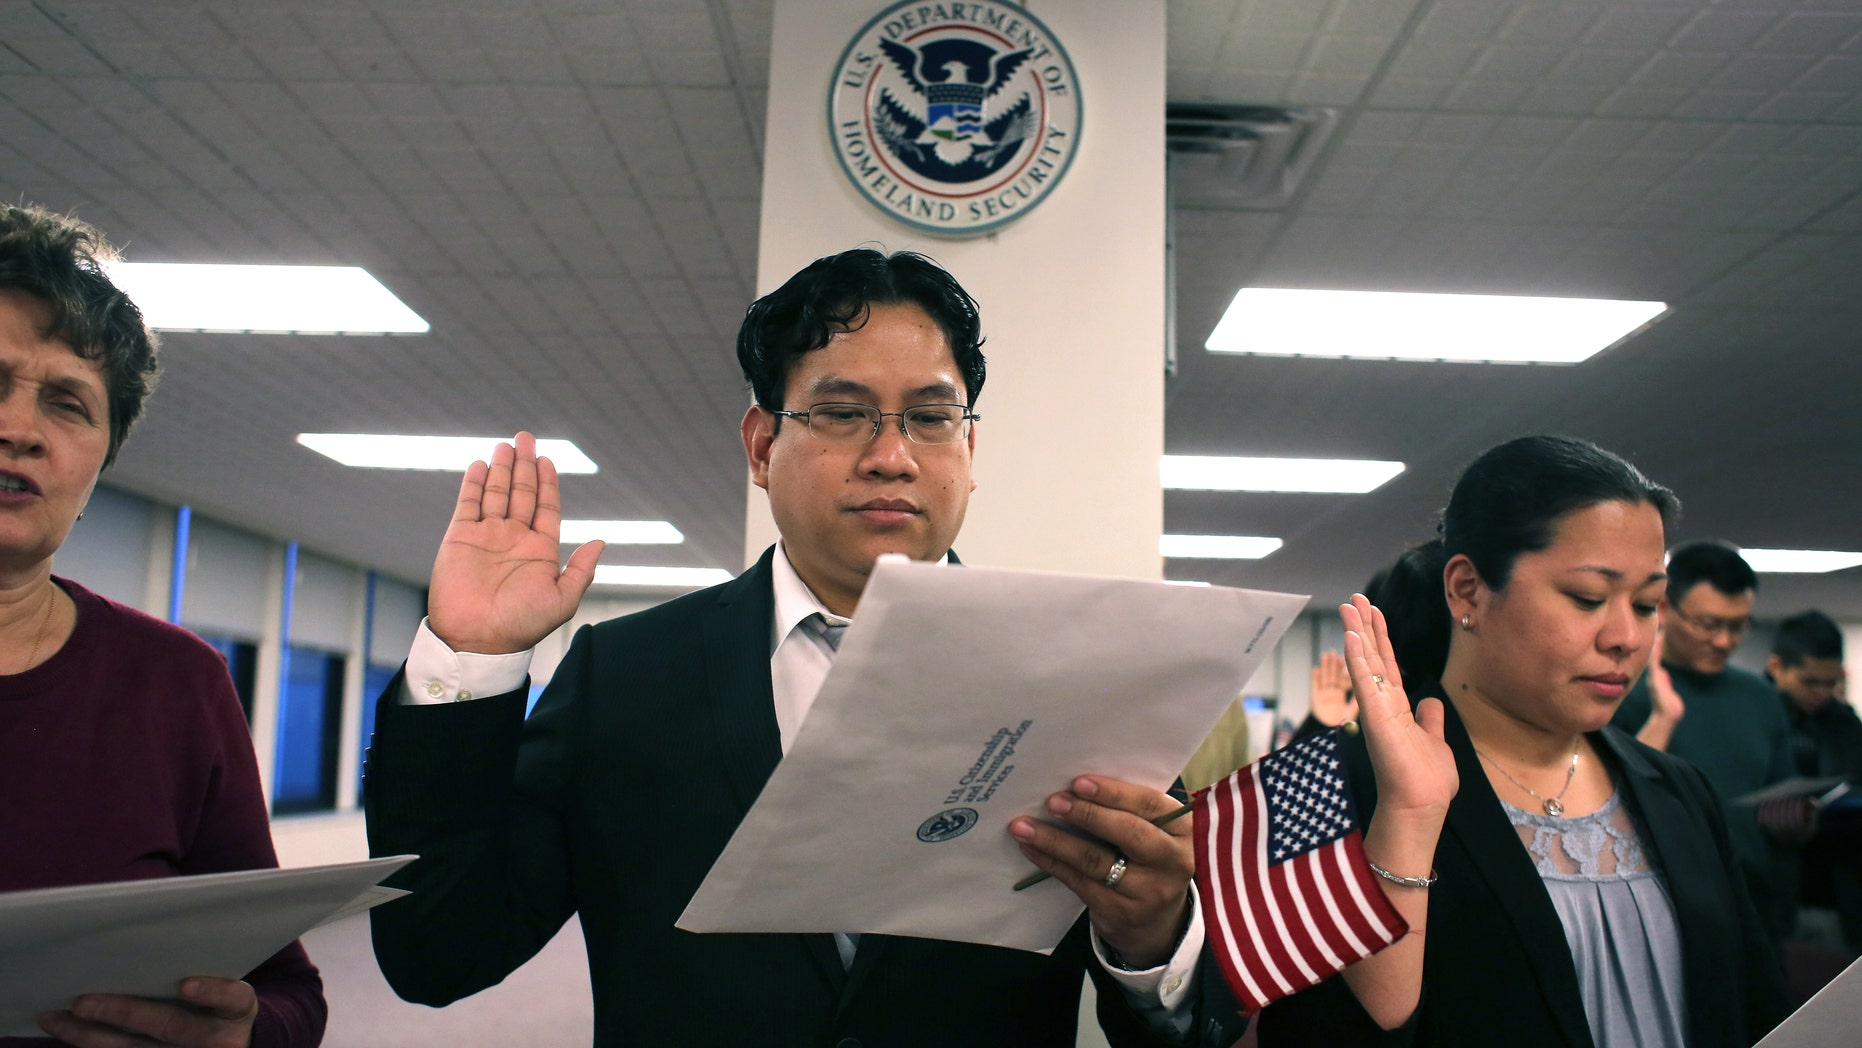 NEWARK, NJ - JANUARY 28:  Immigrants take the oath of allegiance to the United States during a ceremony at the district office of U.S. Citizenship and Immigration Services (USCIS) on January 28, 2013 in Newark, New Jersey. Some 38,000 immigrants became U.S. citizens at the Newark office alone in 2012.  (Photo by John Moore/Getty Images)